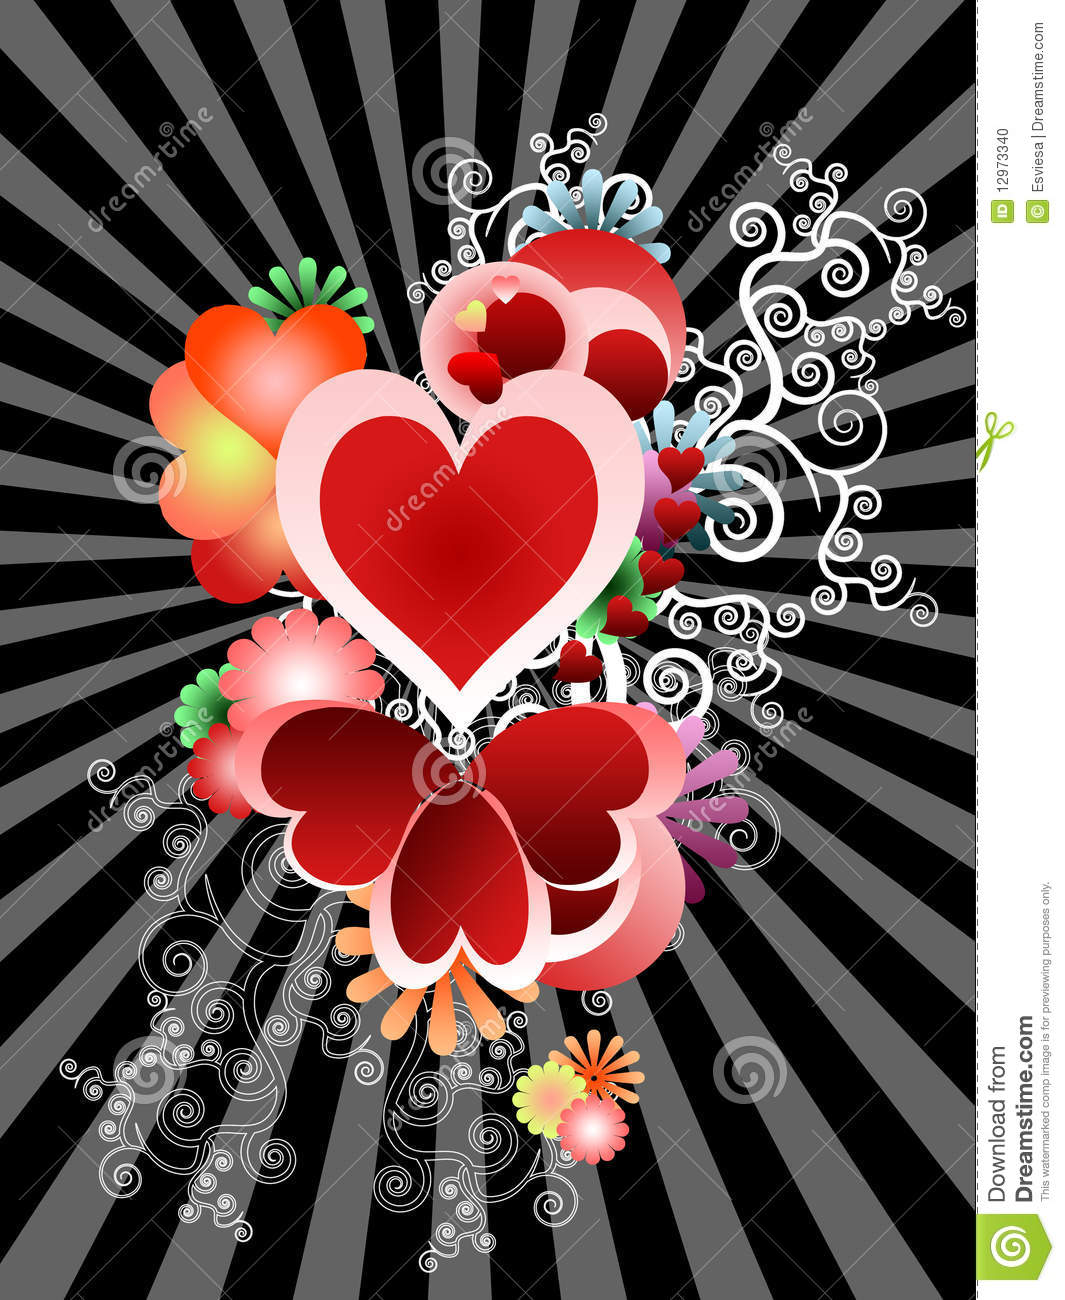 Valentine's day love theme for android apk download.